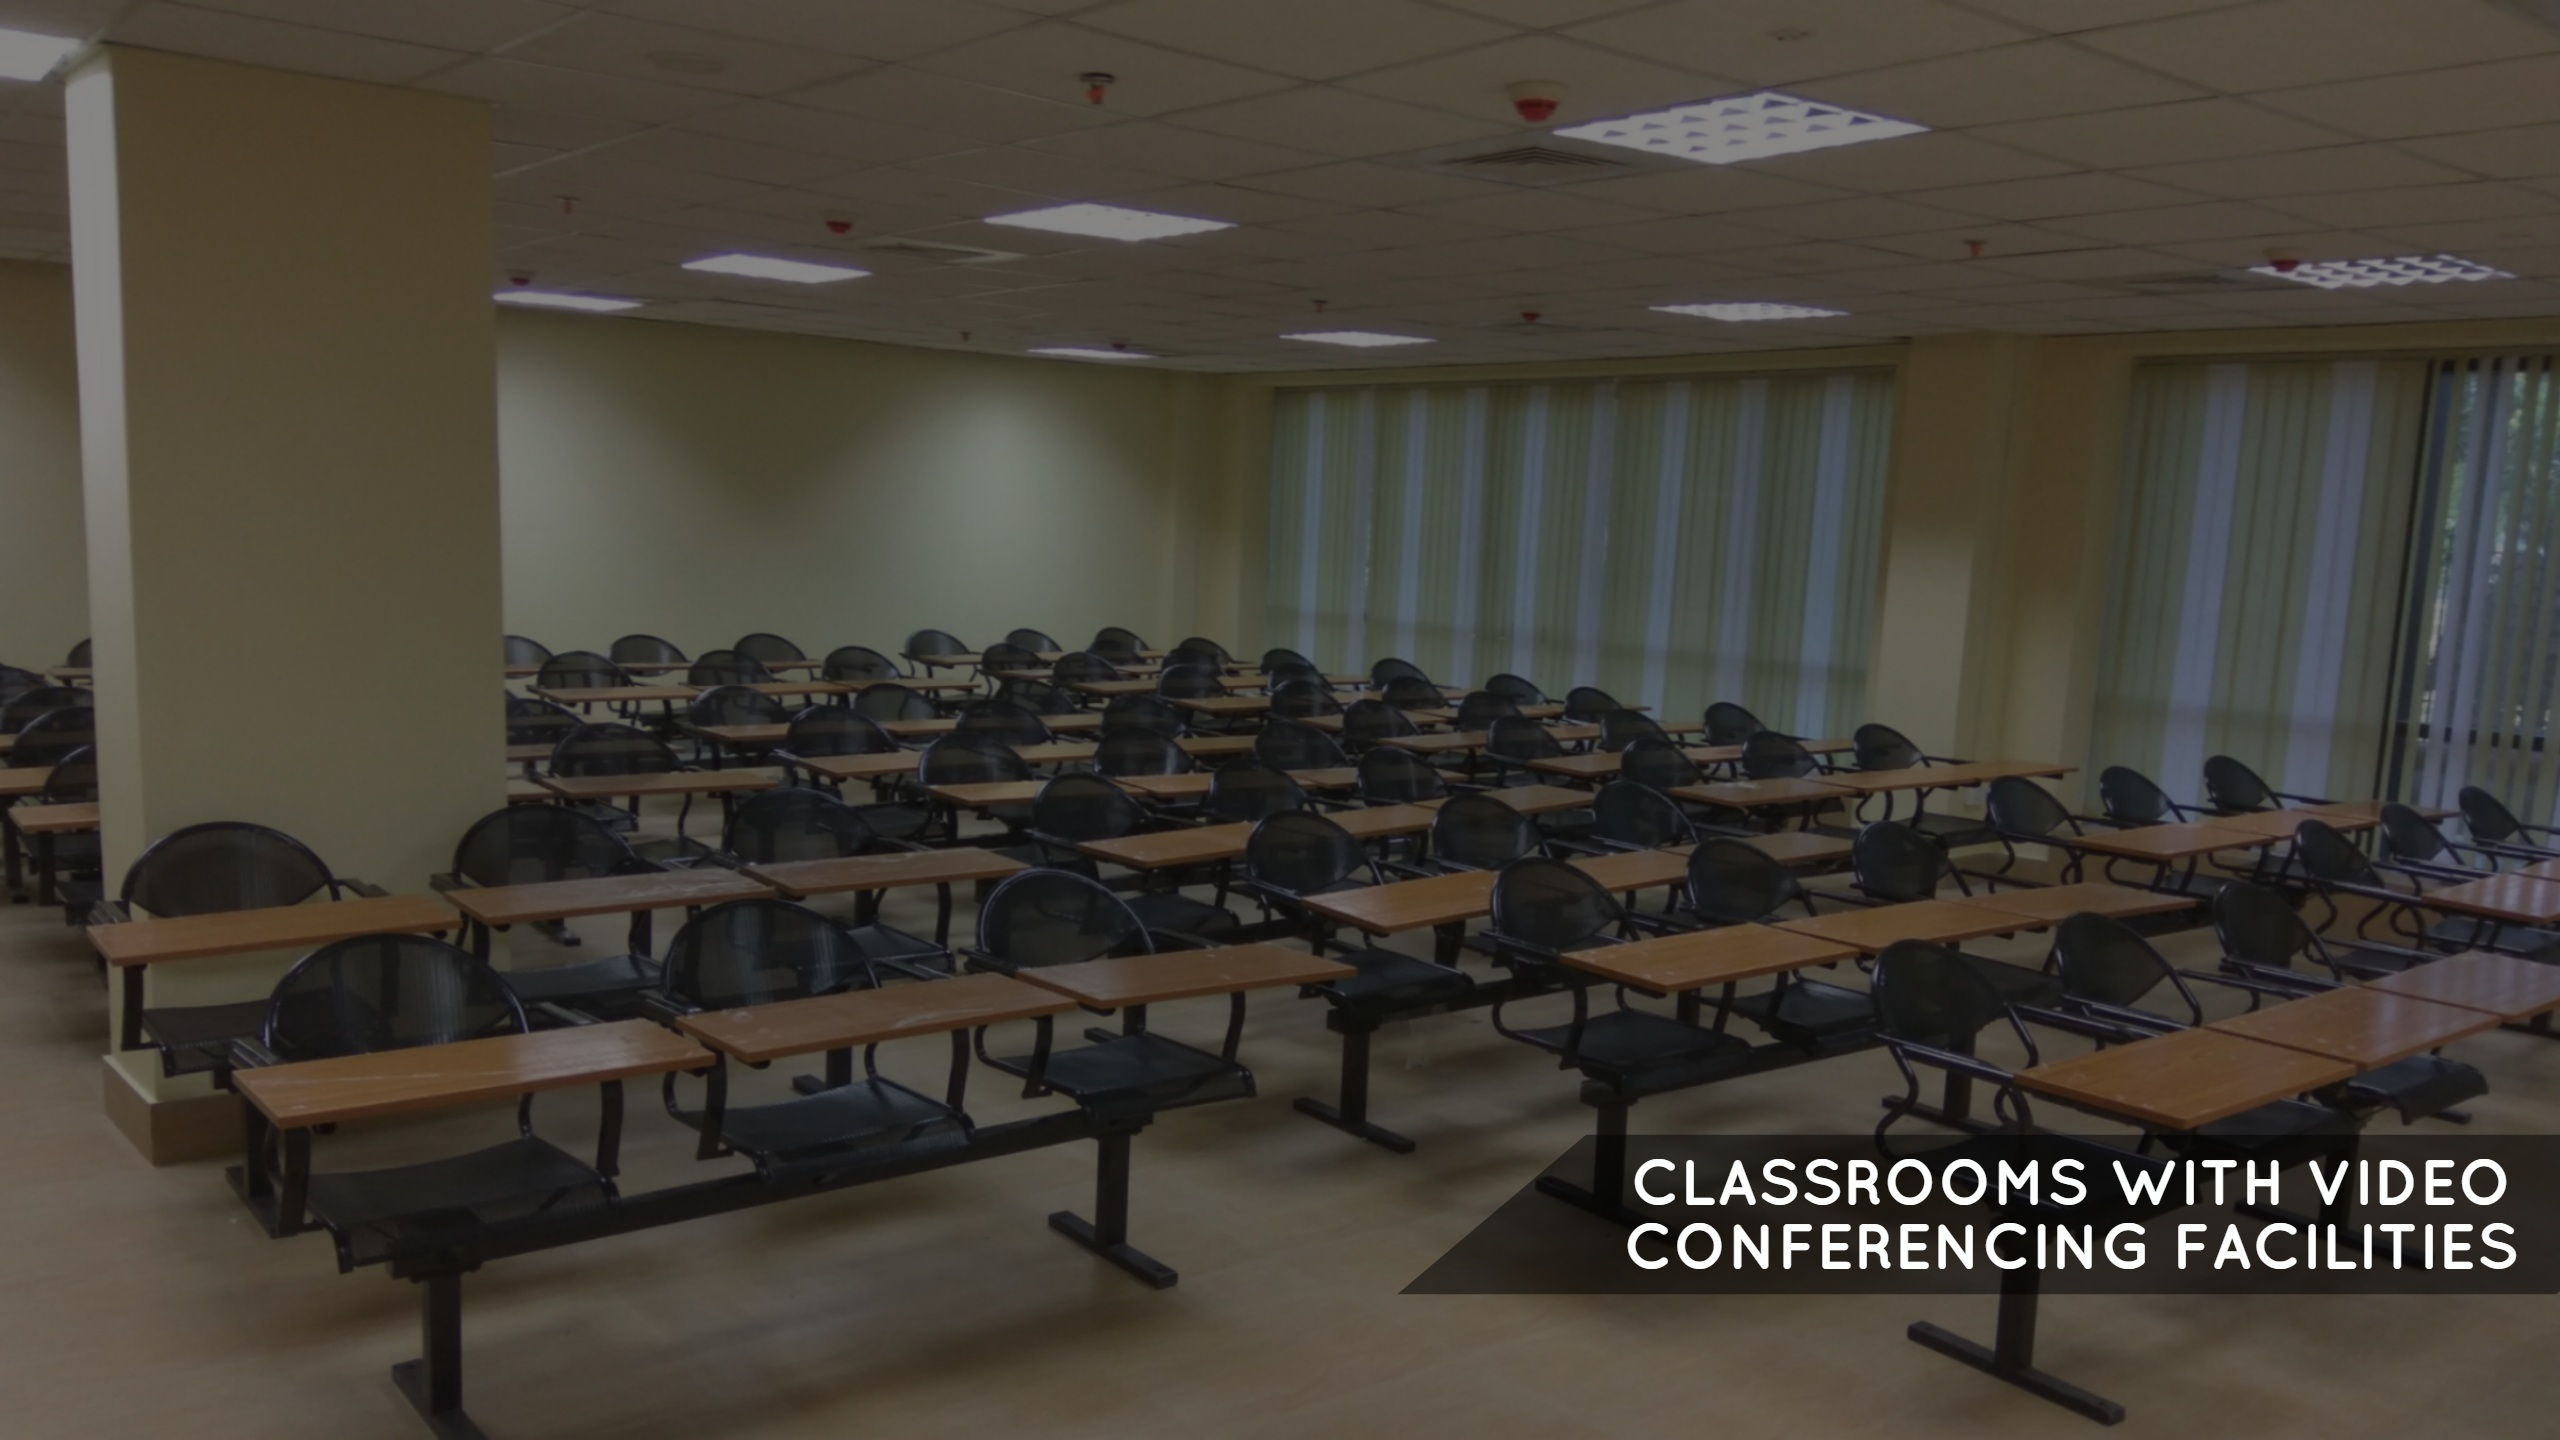 Air Conditioned Classrooms